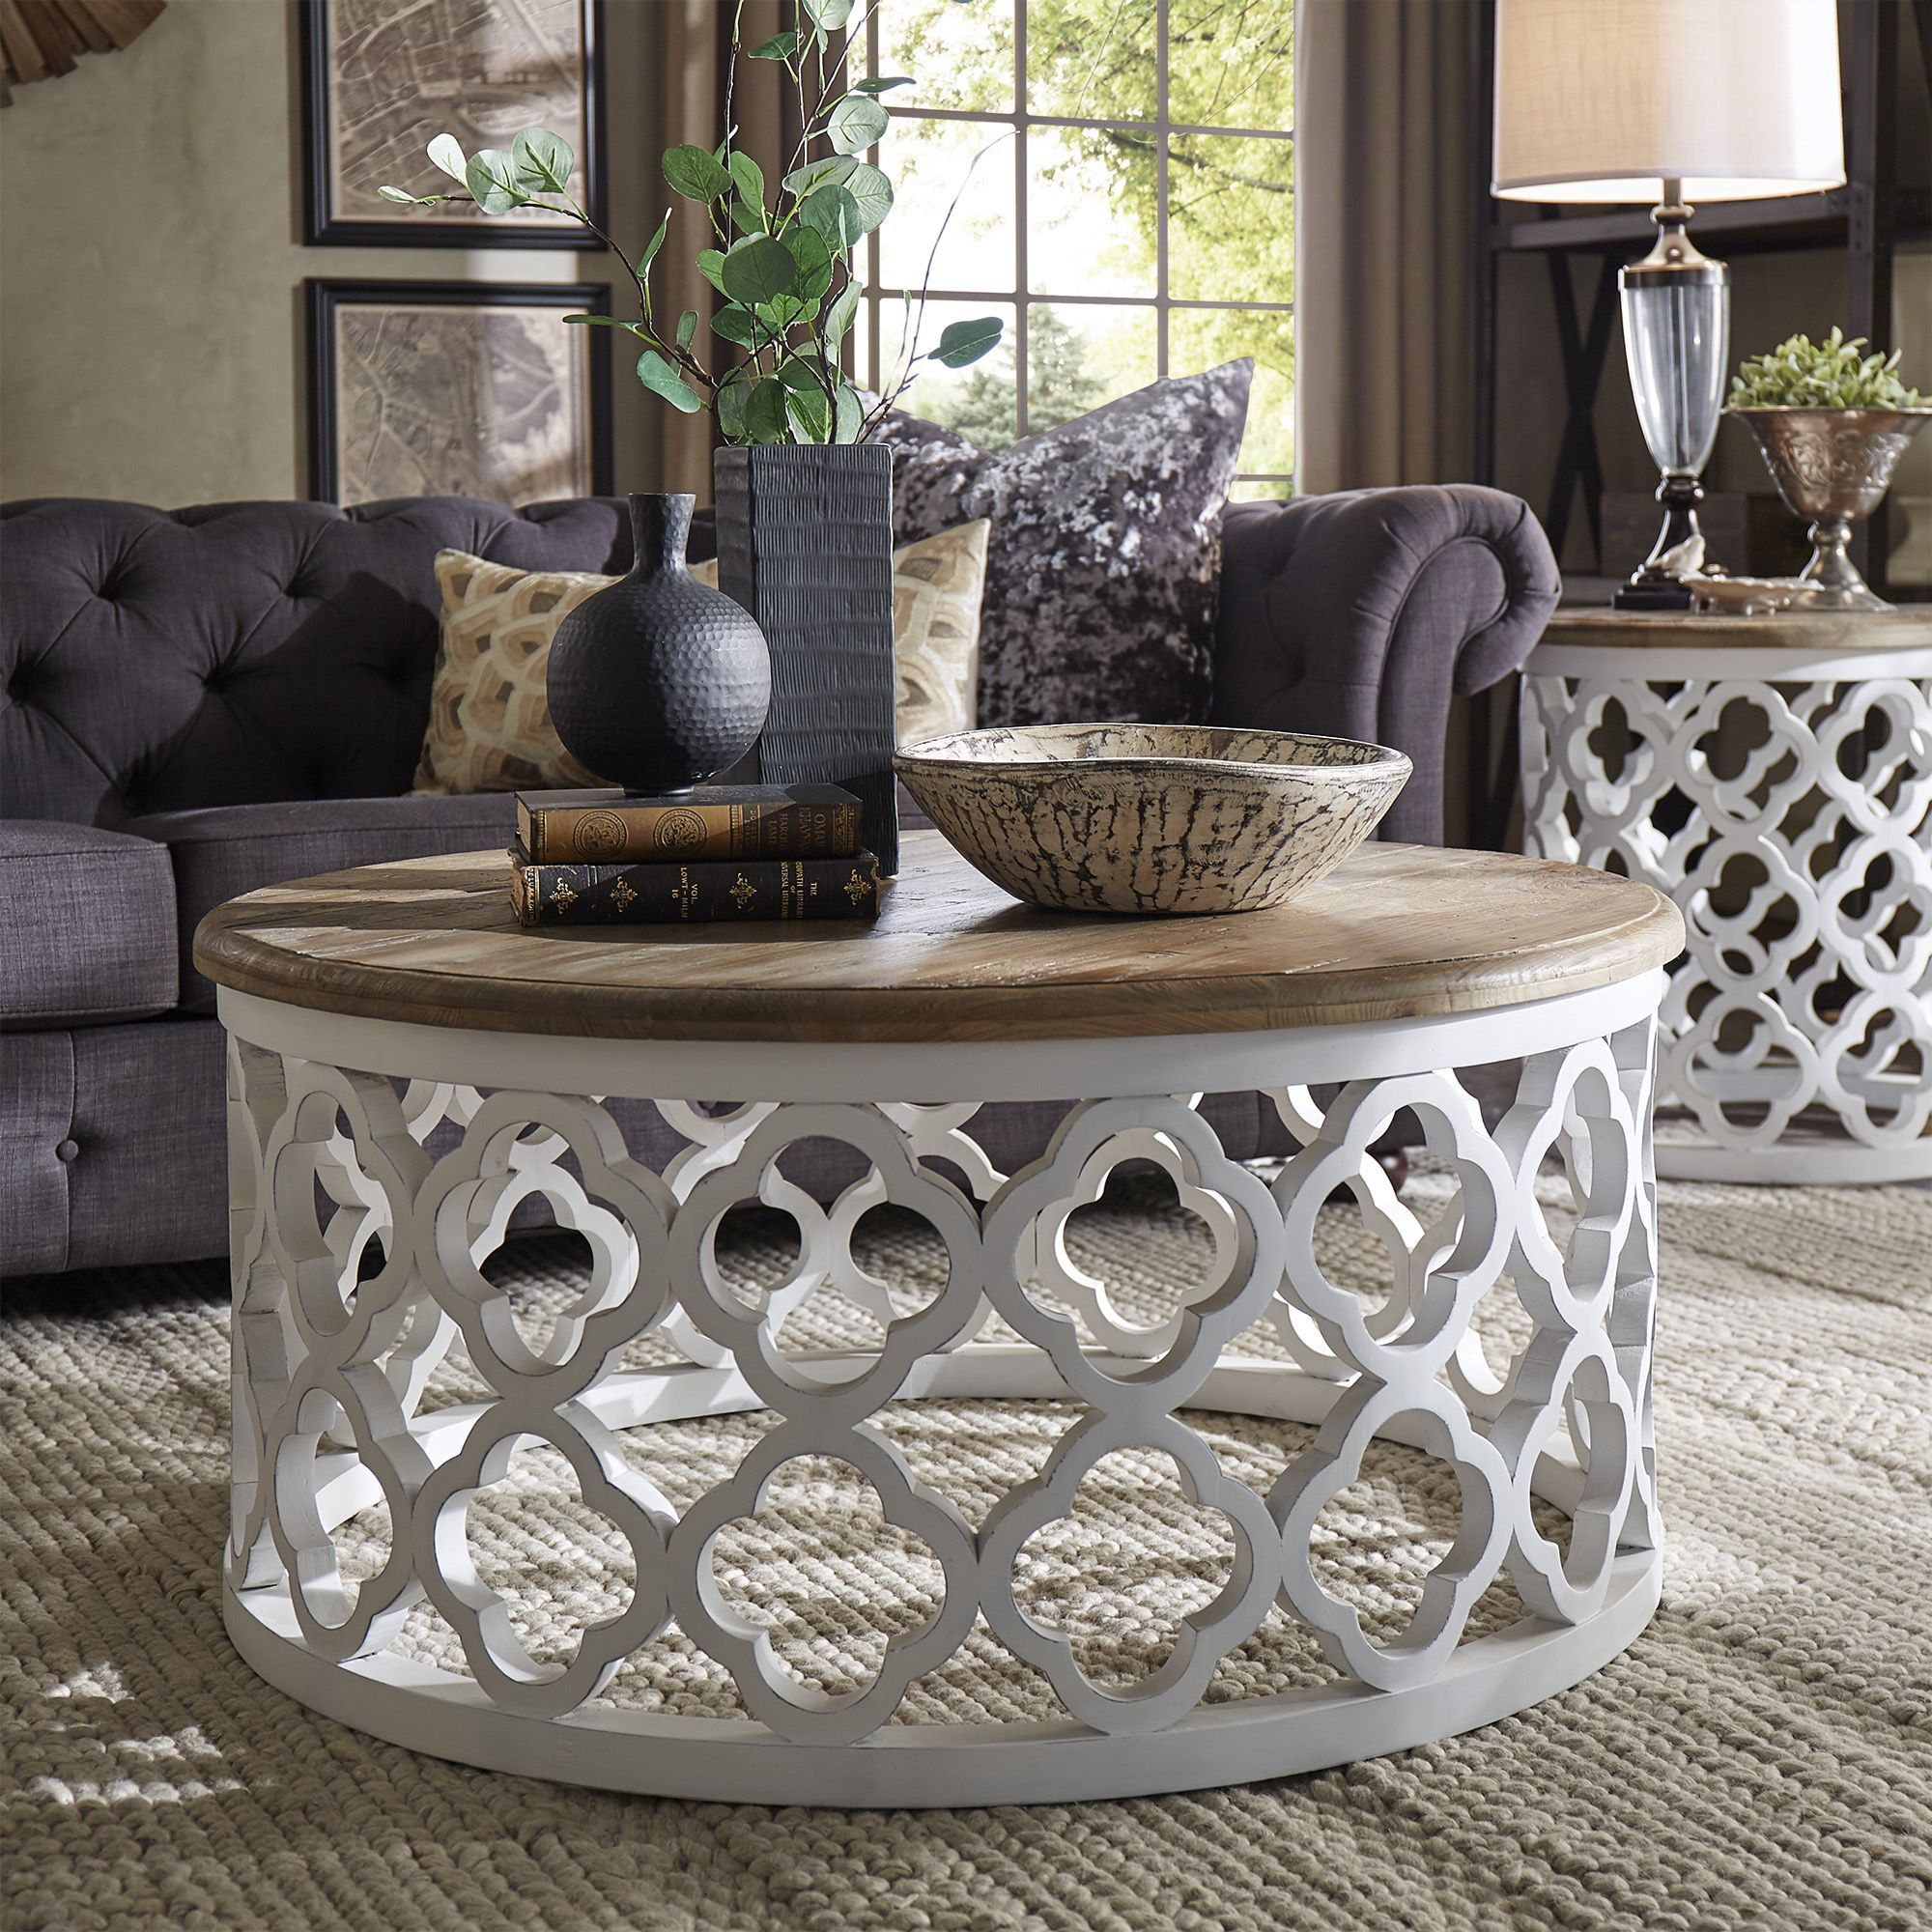 Vince Reclaimed Wood Moroccan Trellis Drum Coffee Table By